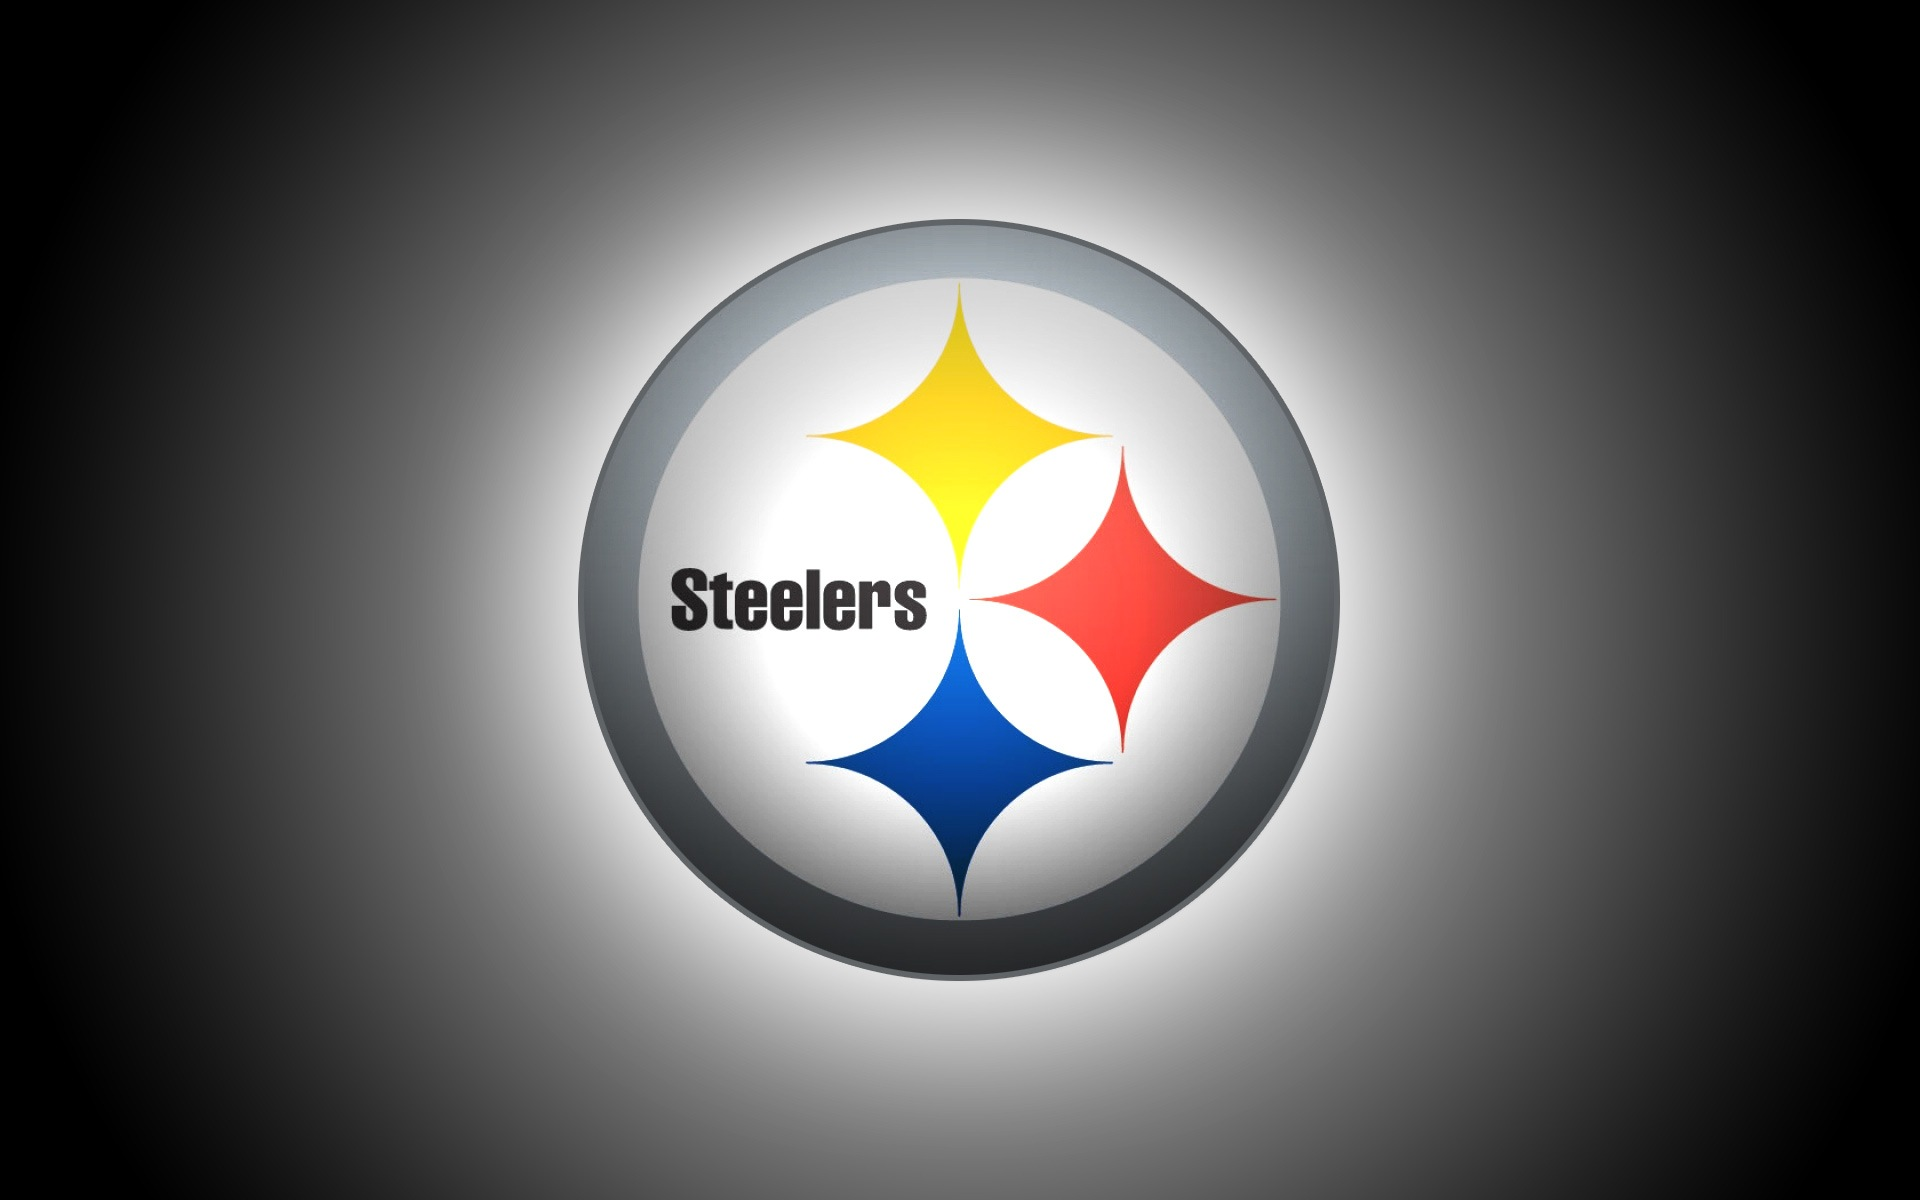 1920x1200 - Steelers Desktop 20